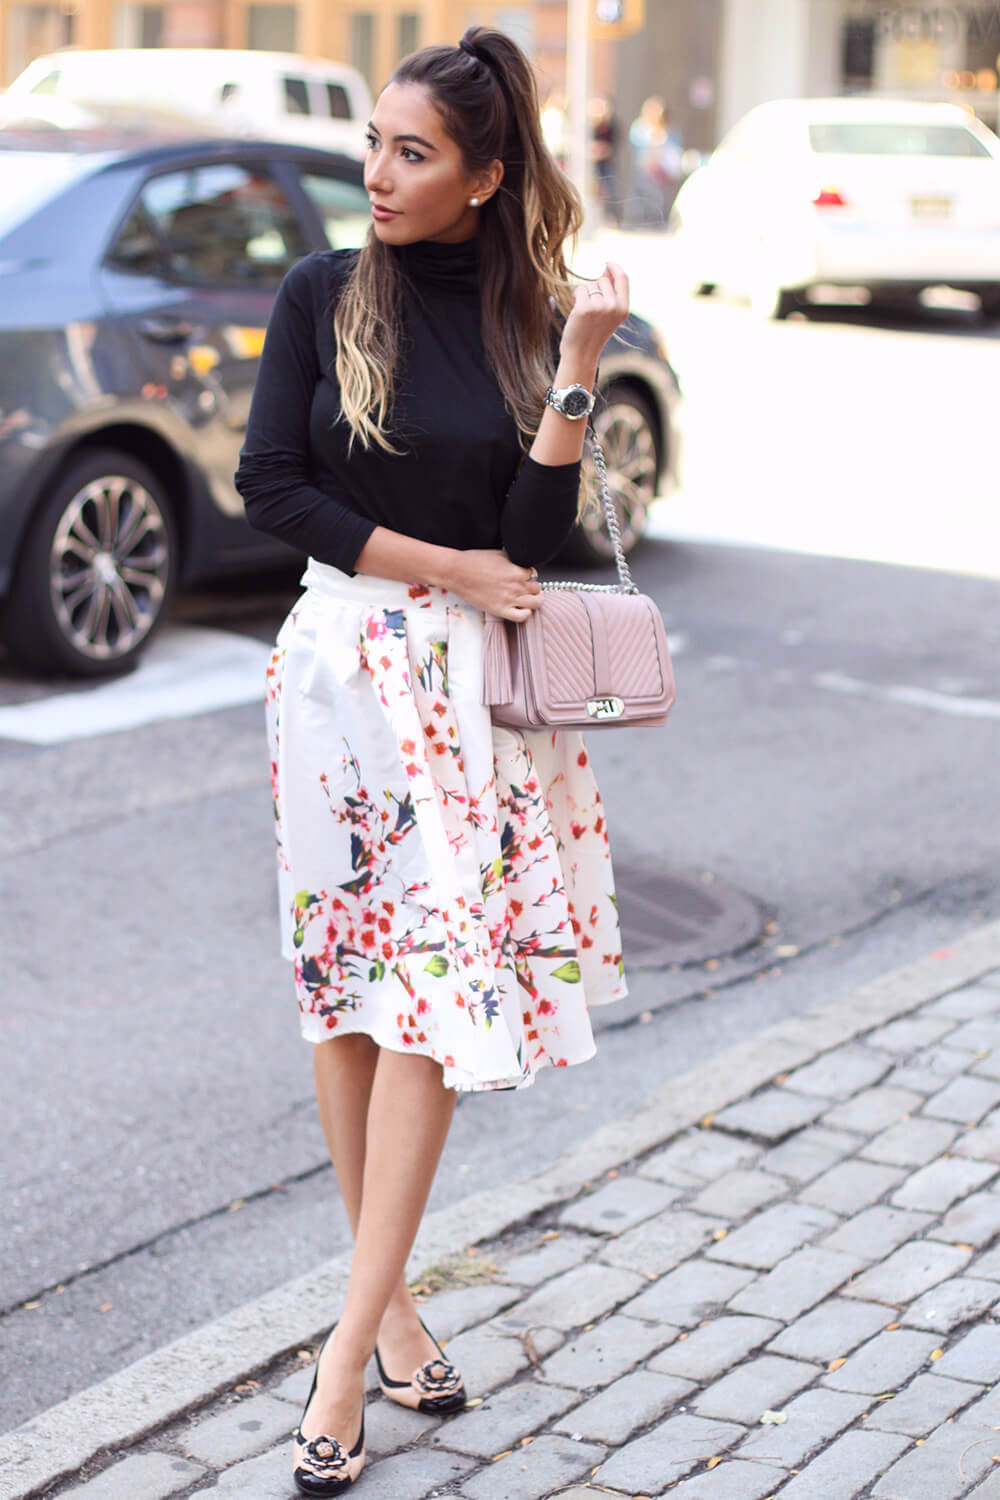 Floral skirt from Make Me Chic worn with black turtleneck. Style by Ulia Ali.